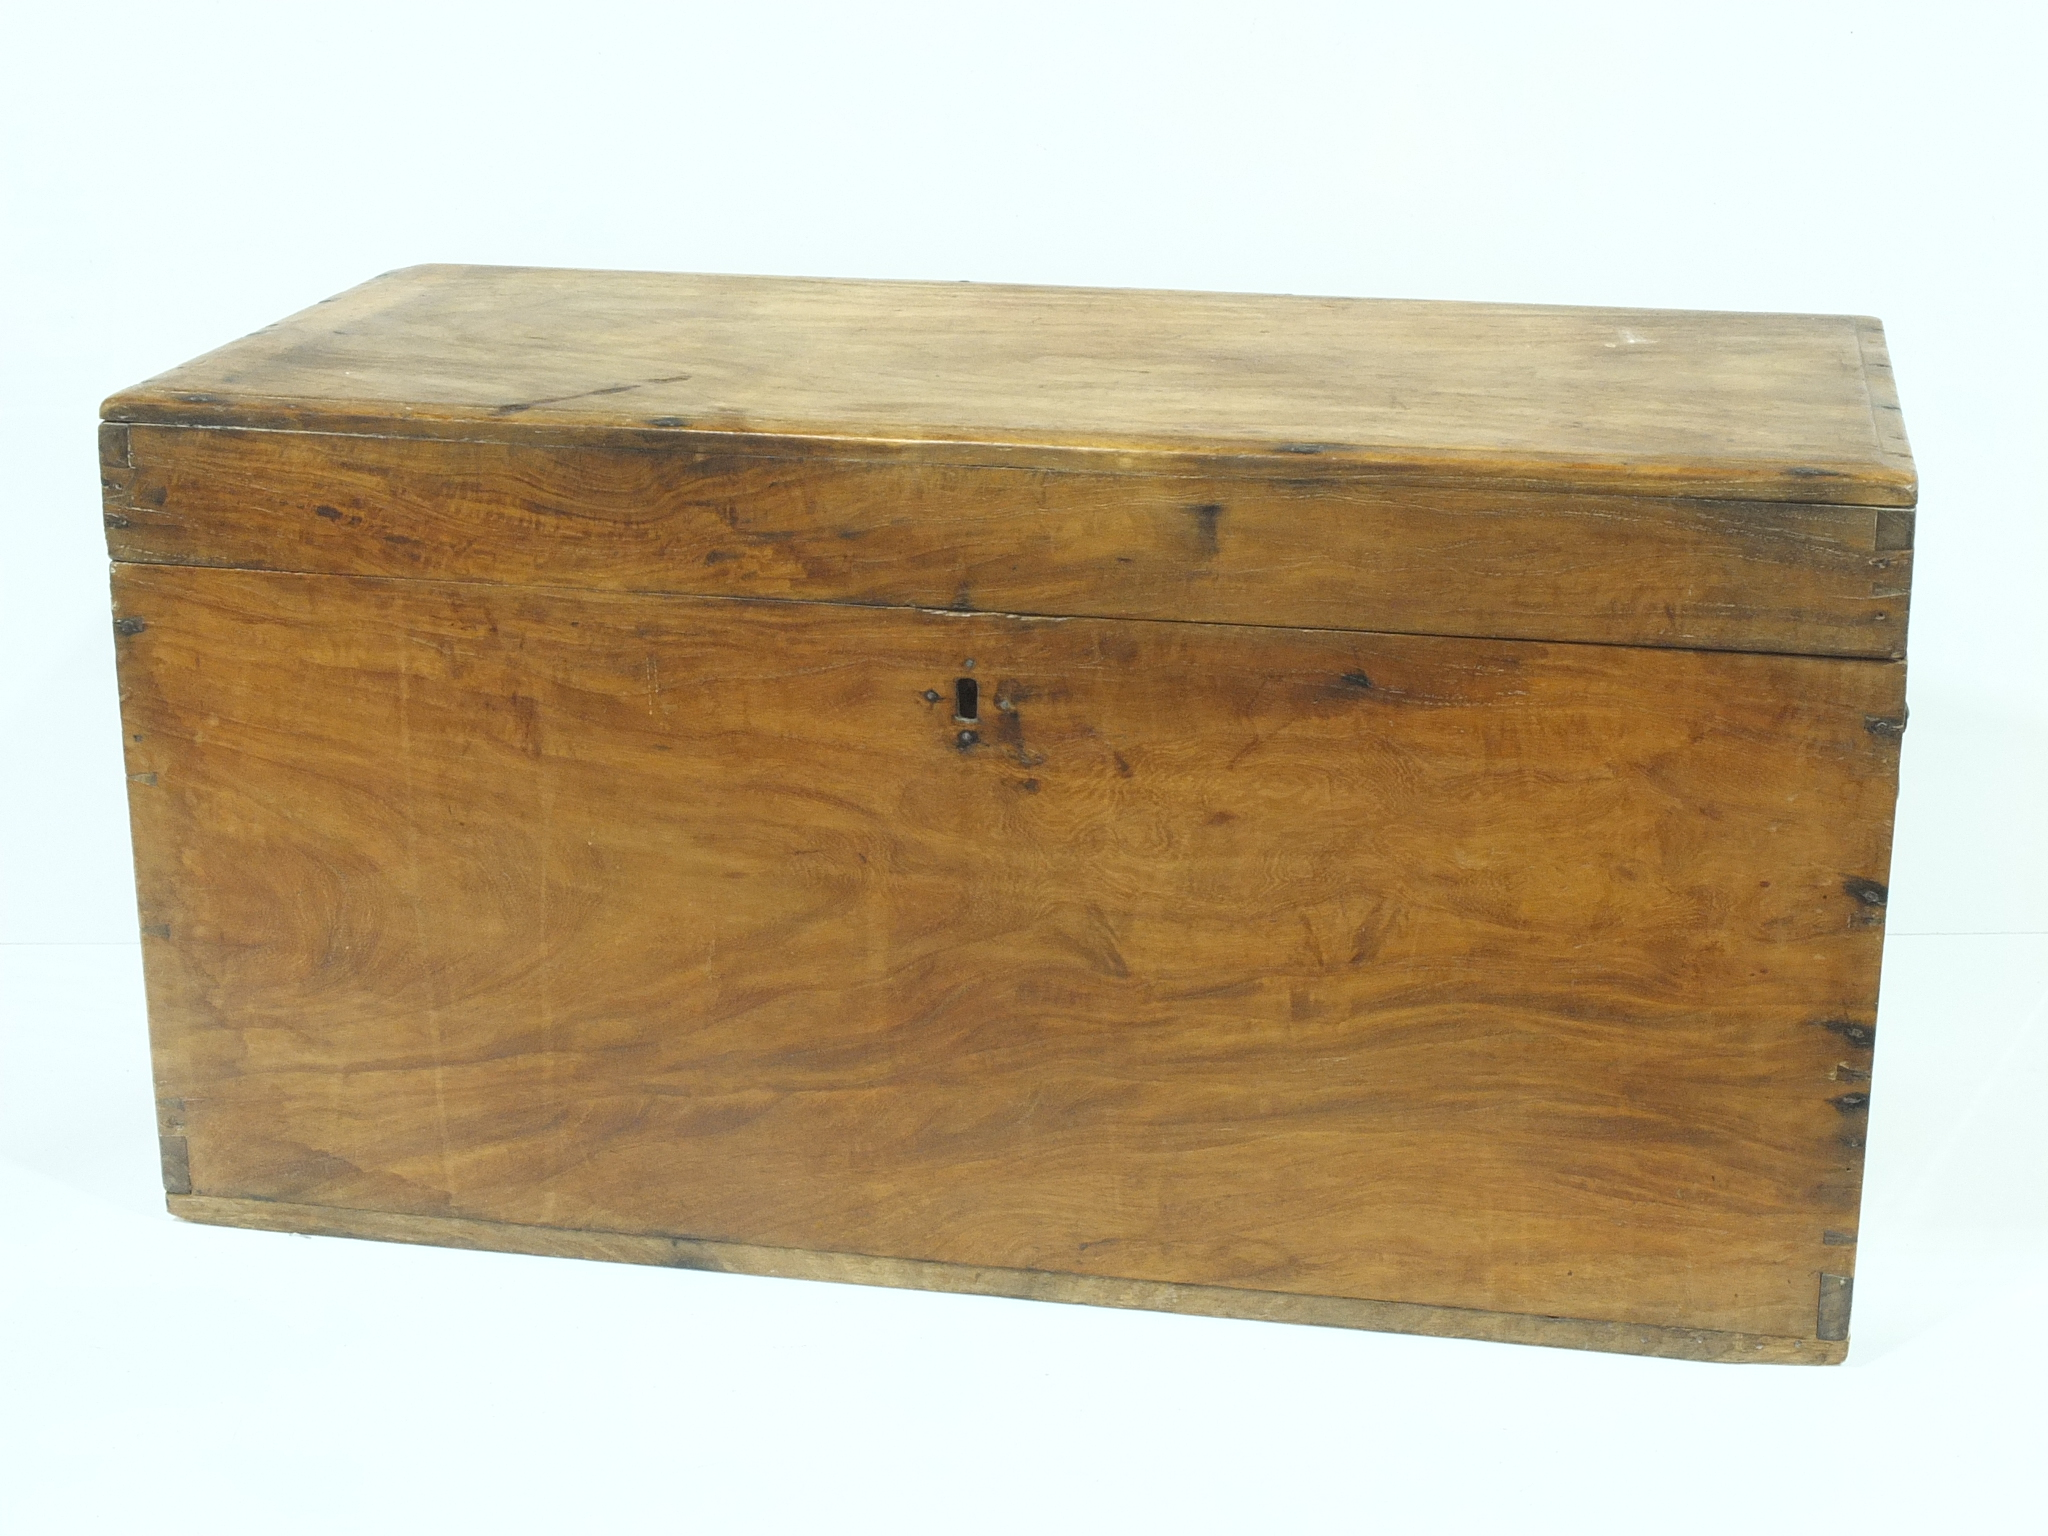 'Antique Anglo Indian Teak Trunk'